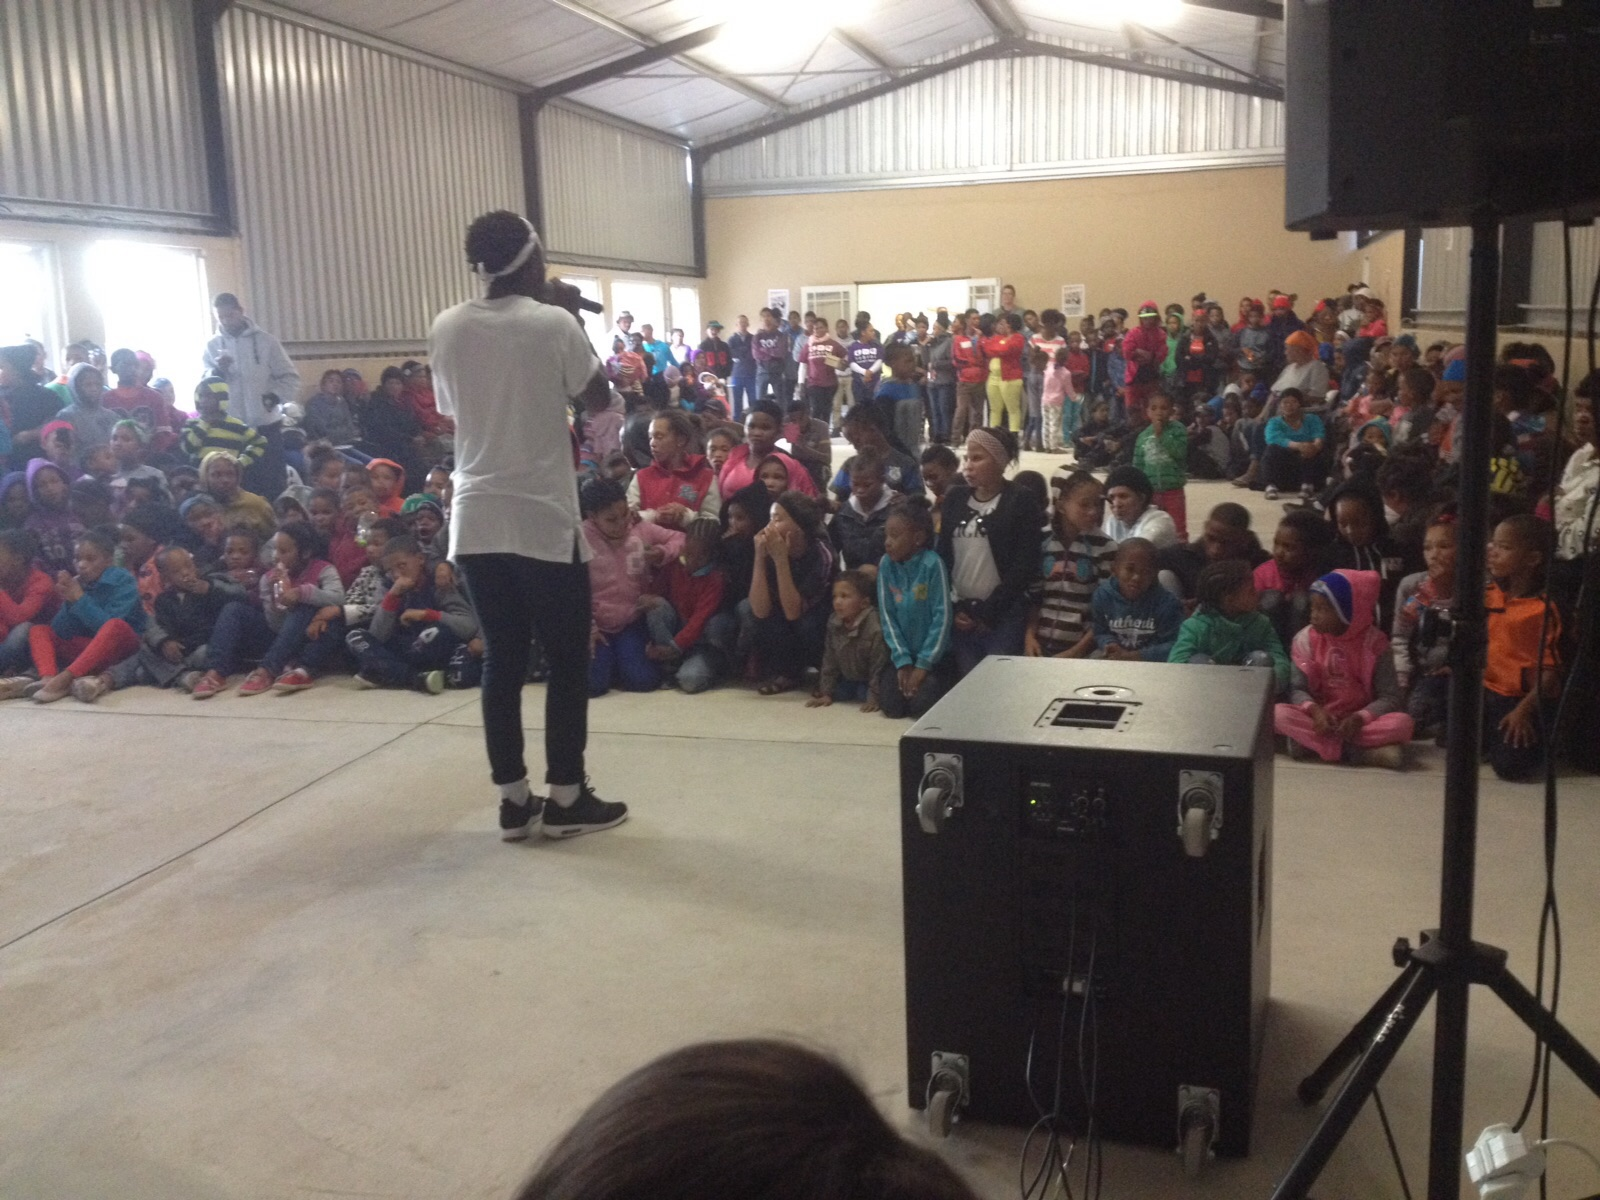 Jabulani Majola sharing with the children